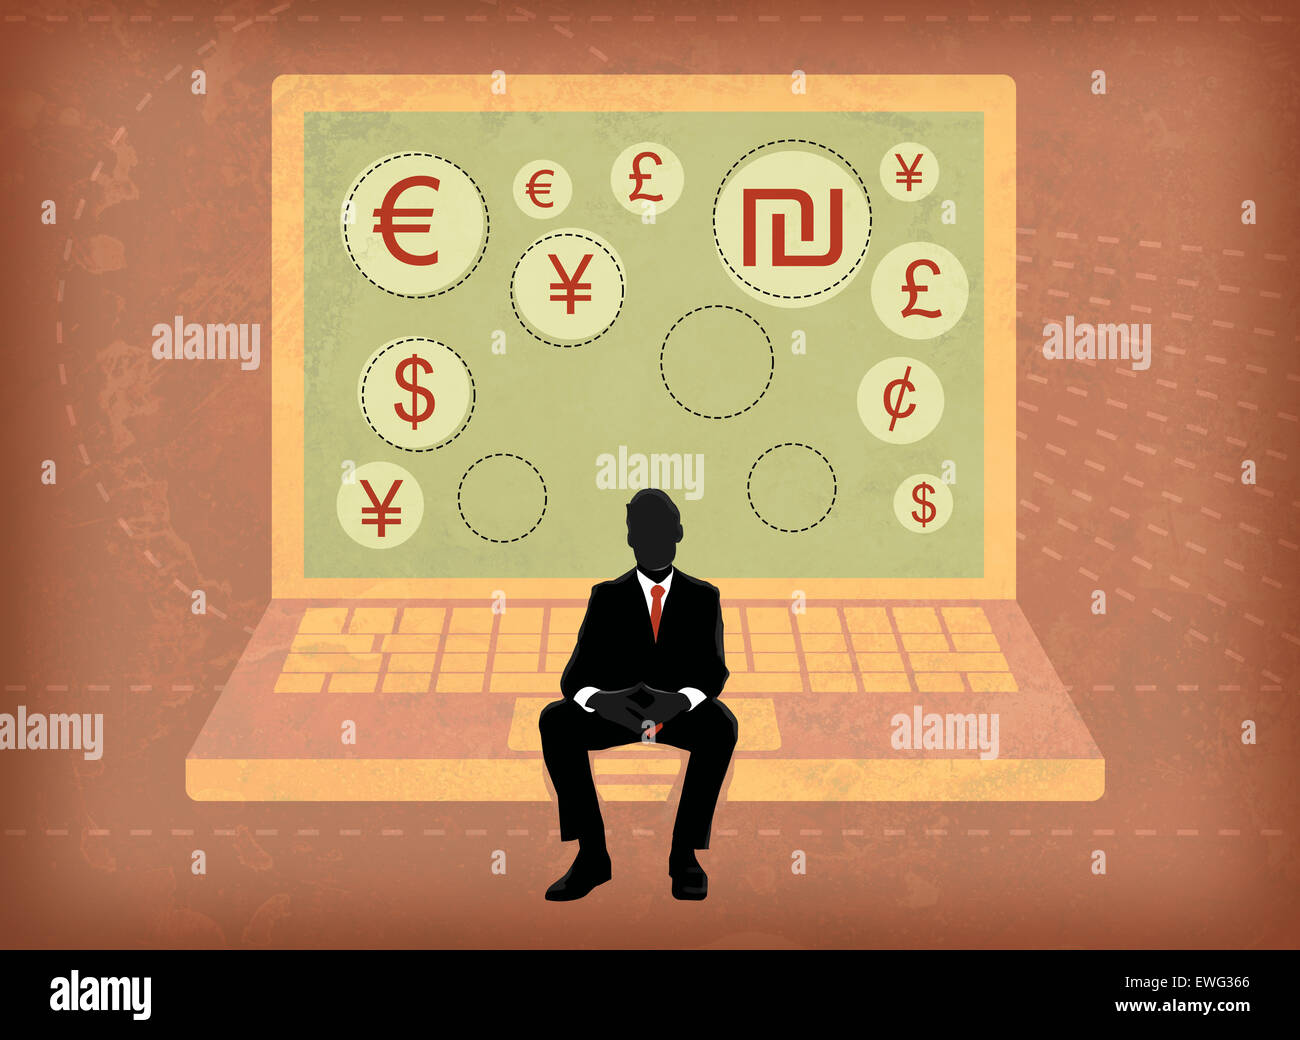 Businessman sitting on laptop screen showing global currency symbols - Stock Image